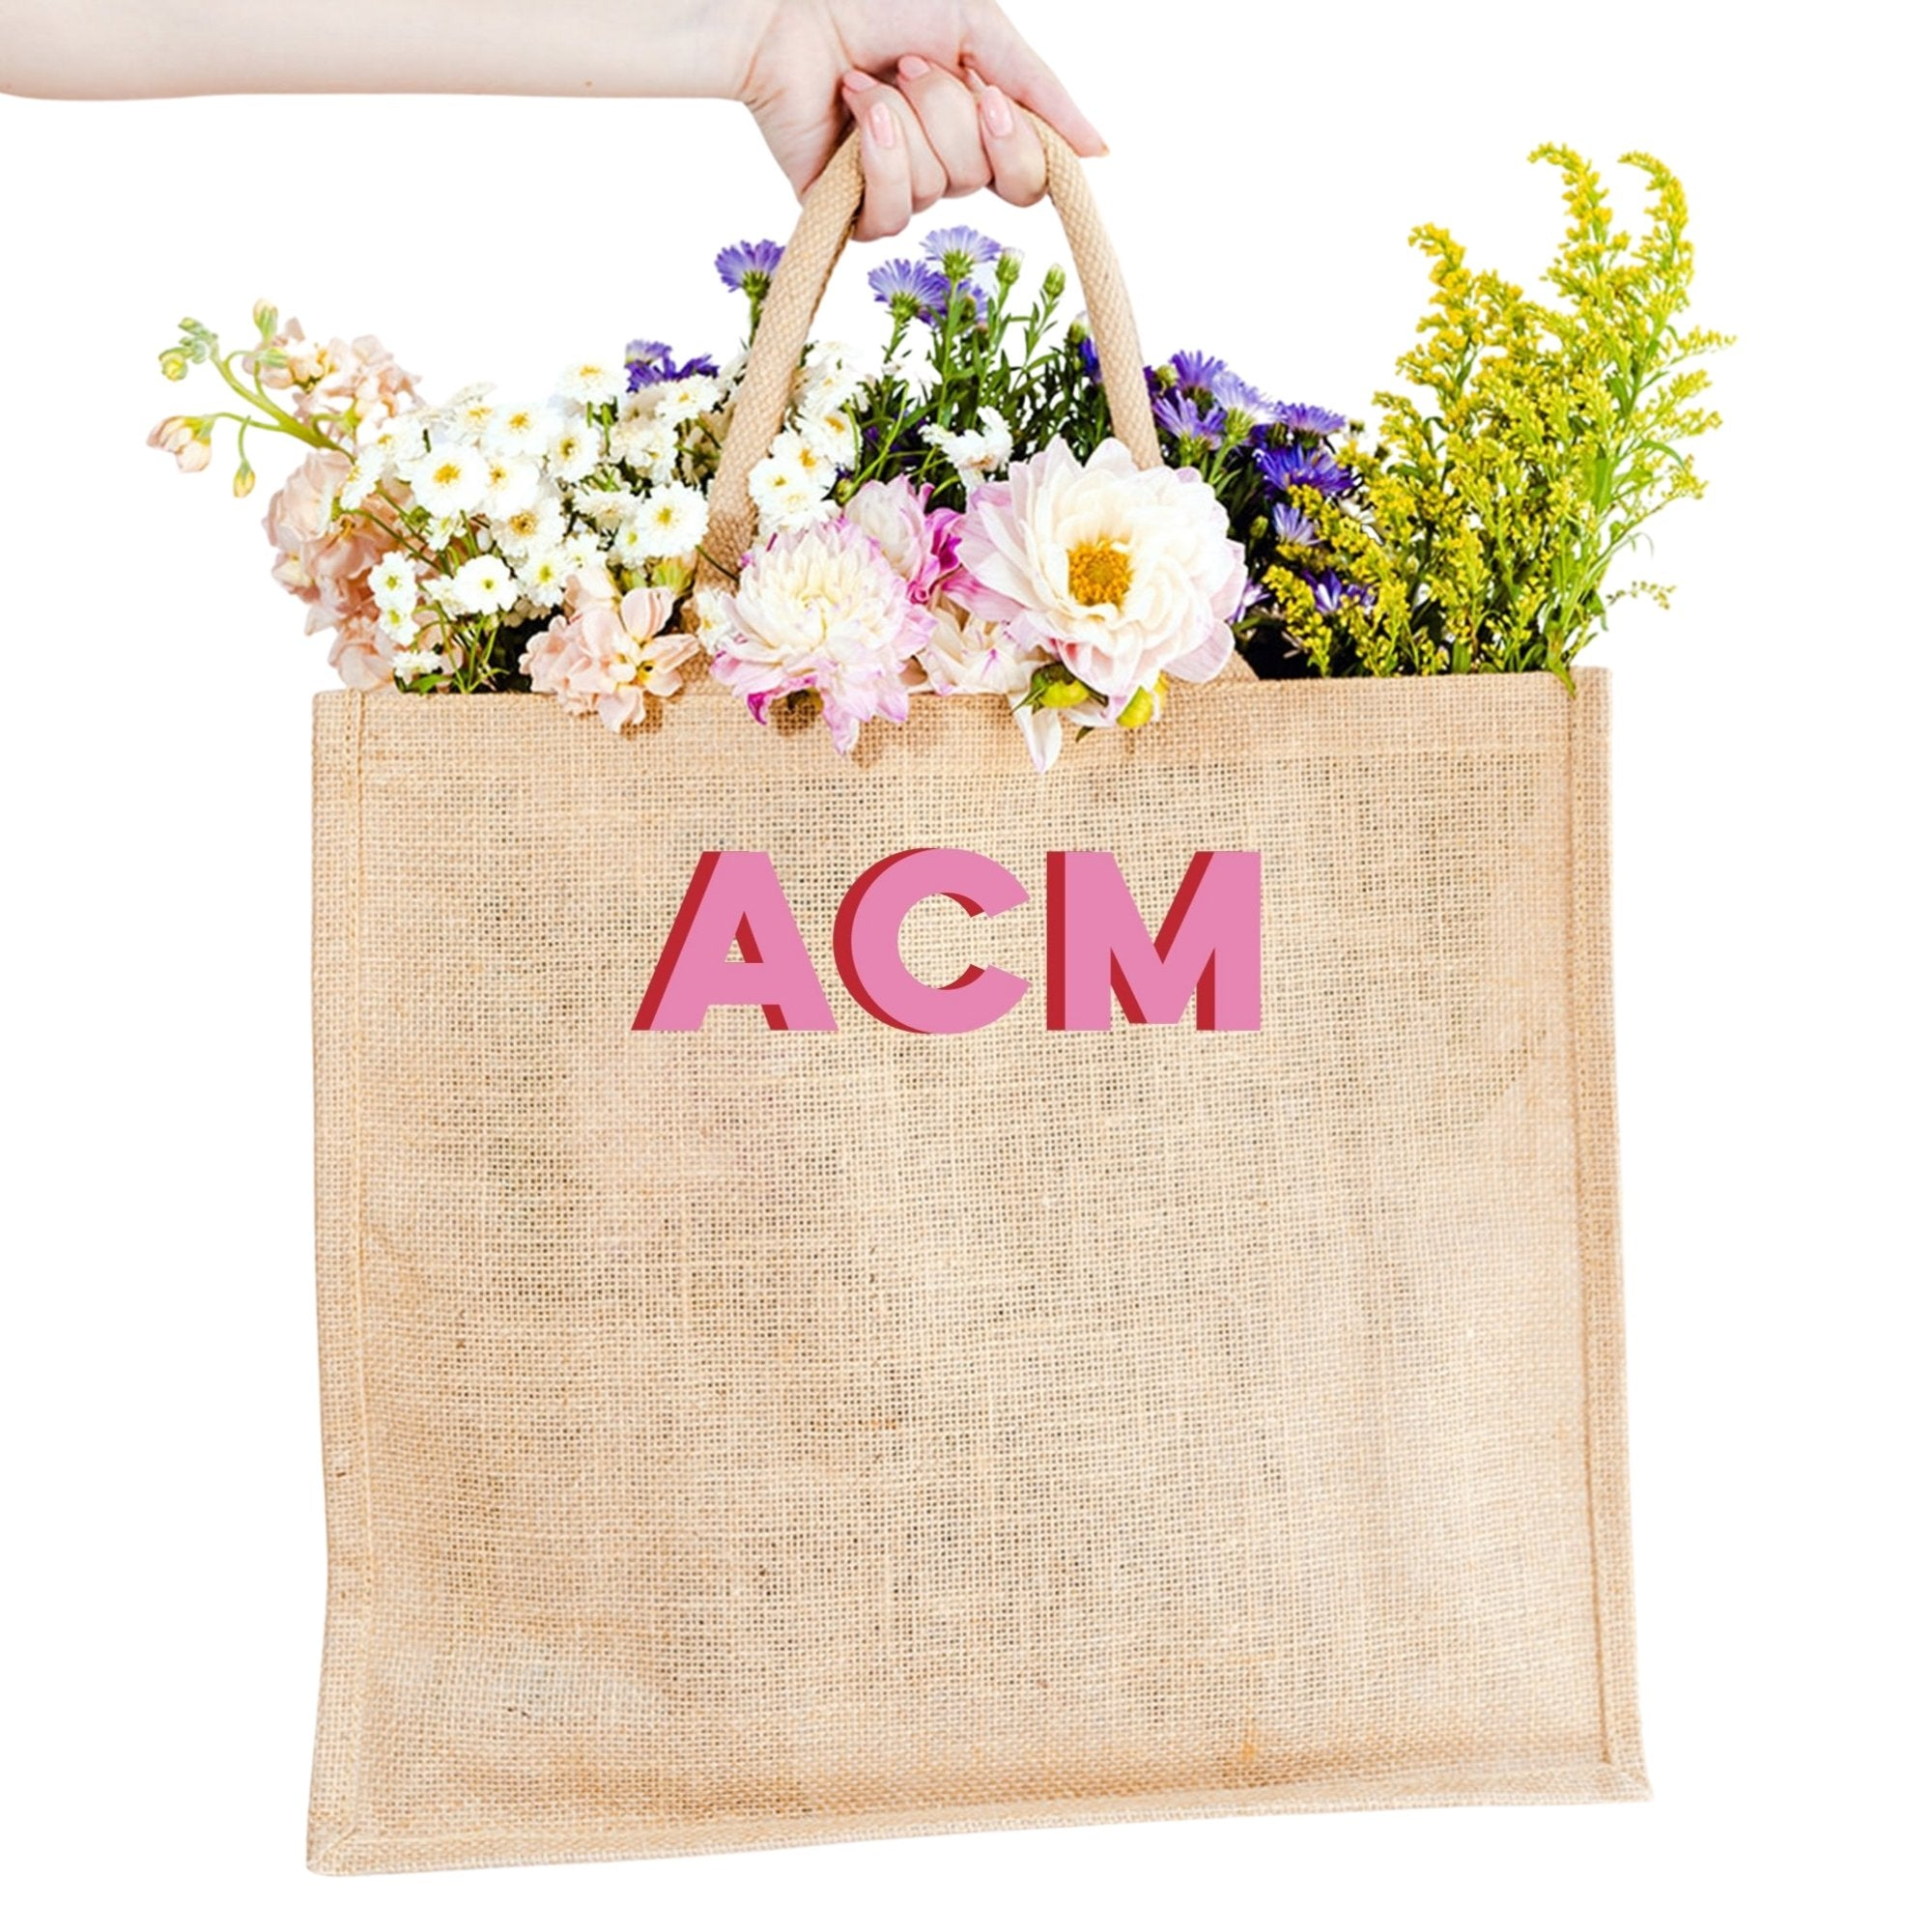 Monogram Jute Carryall